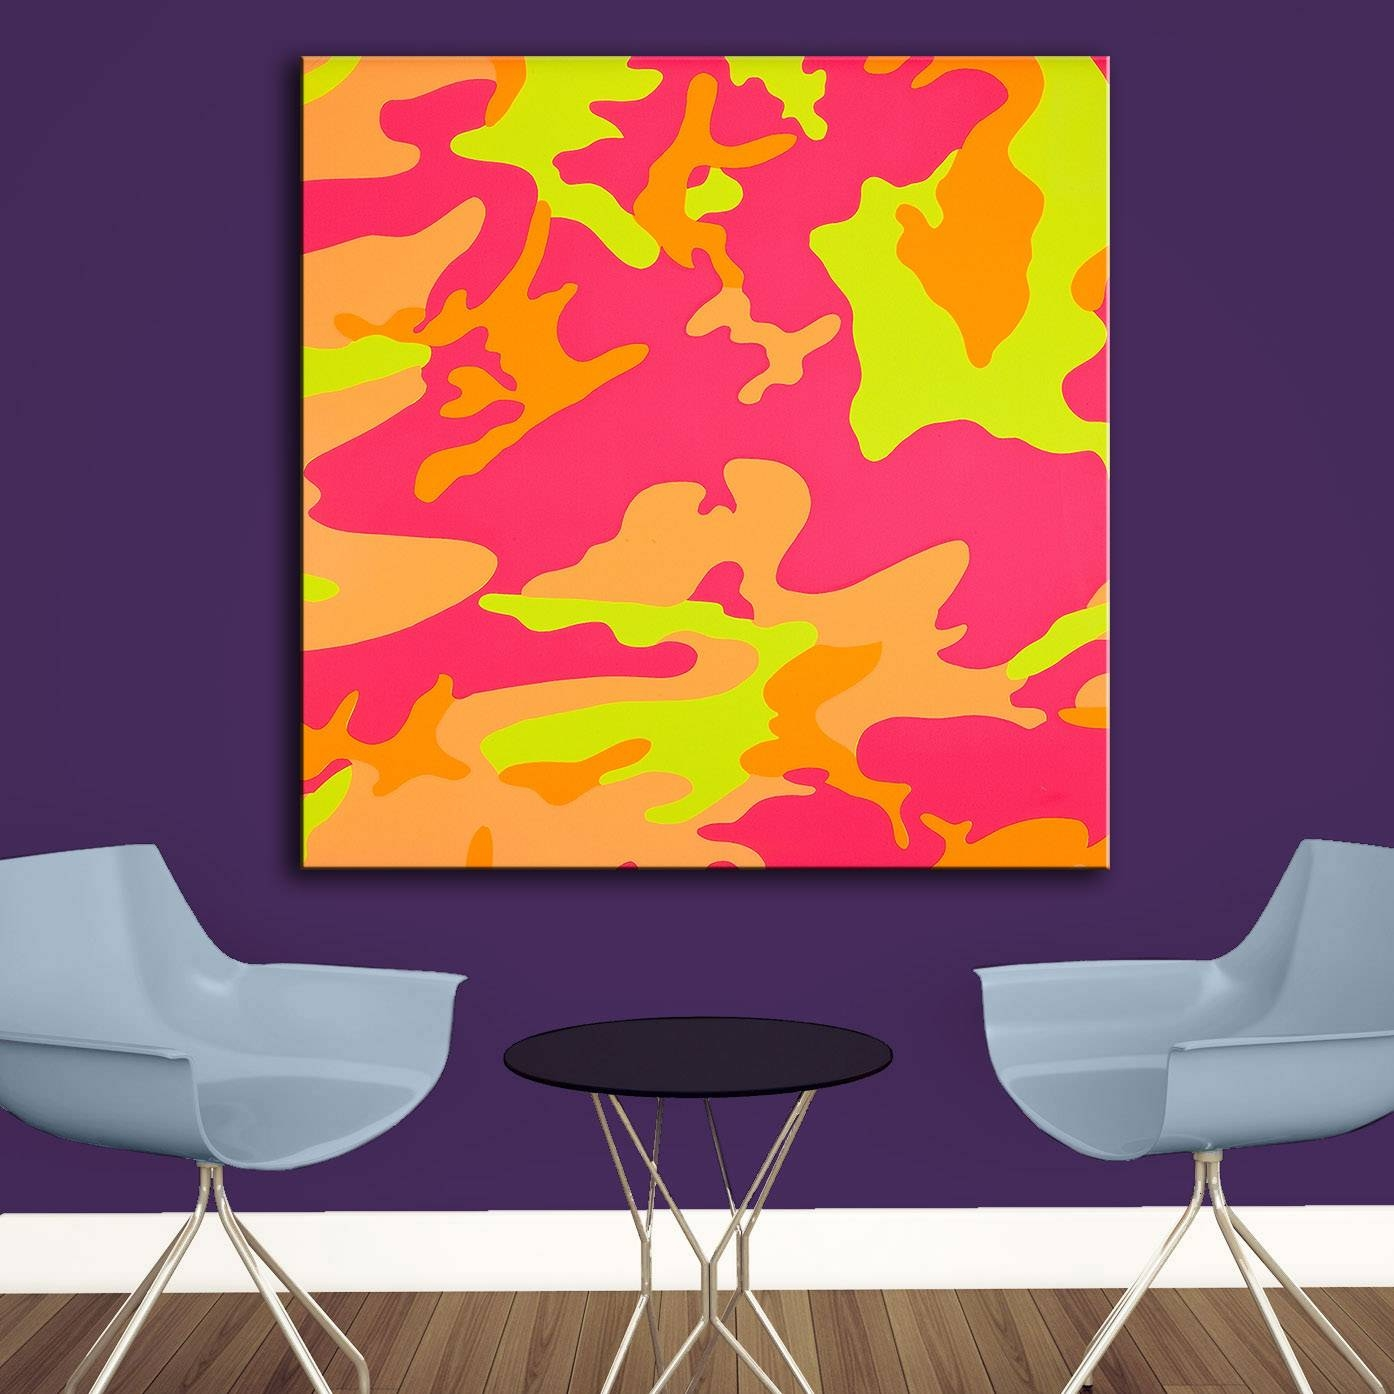 Camouflage Wall Art – Wall Murals Ideas Pertaining To Current Camouflage Wall Art (View 7 of 20)